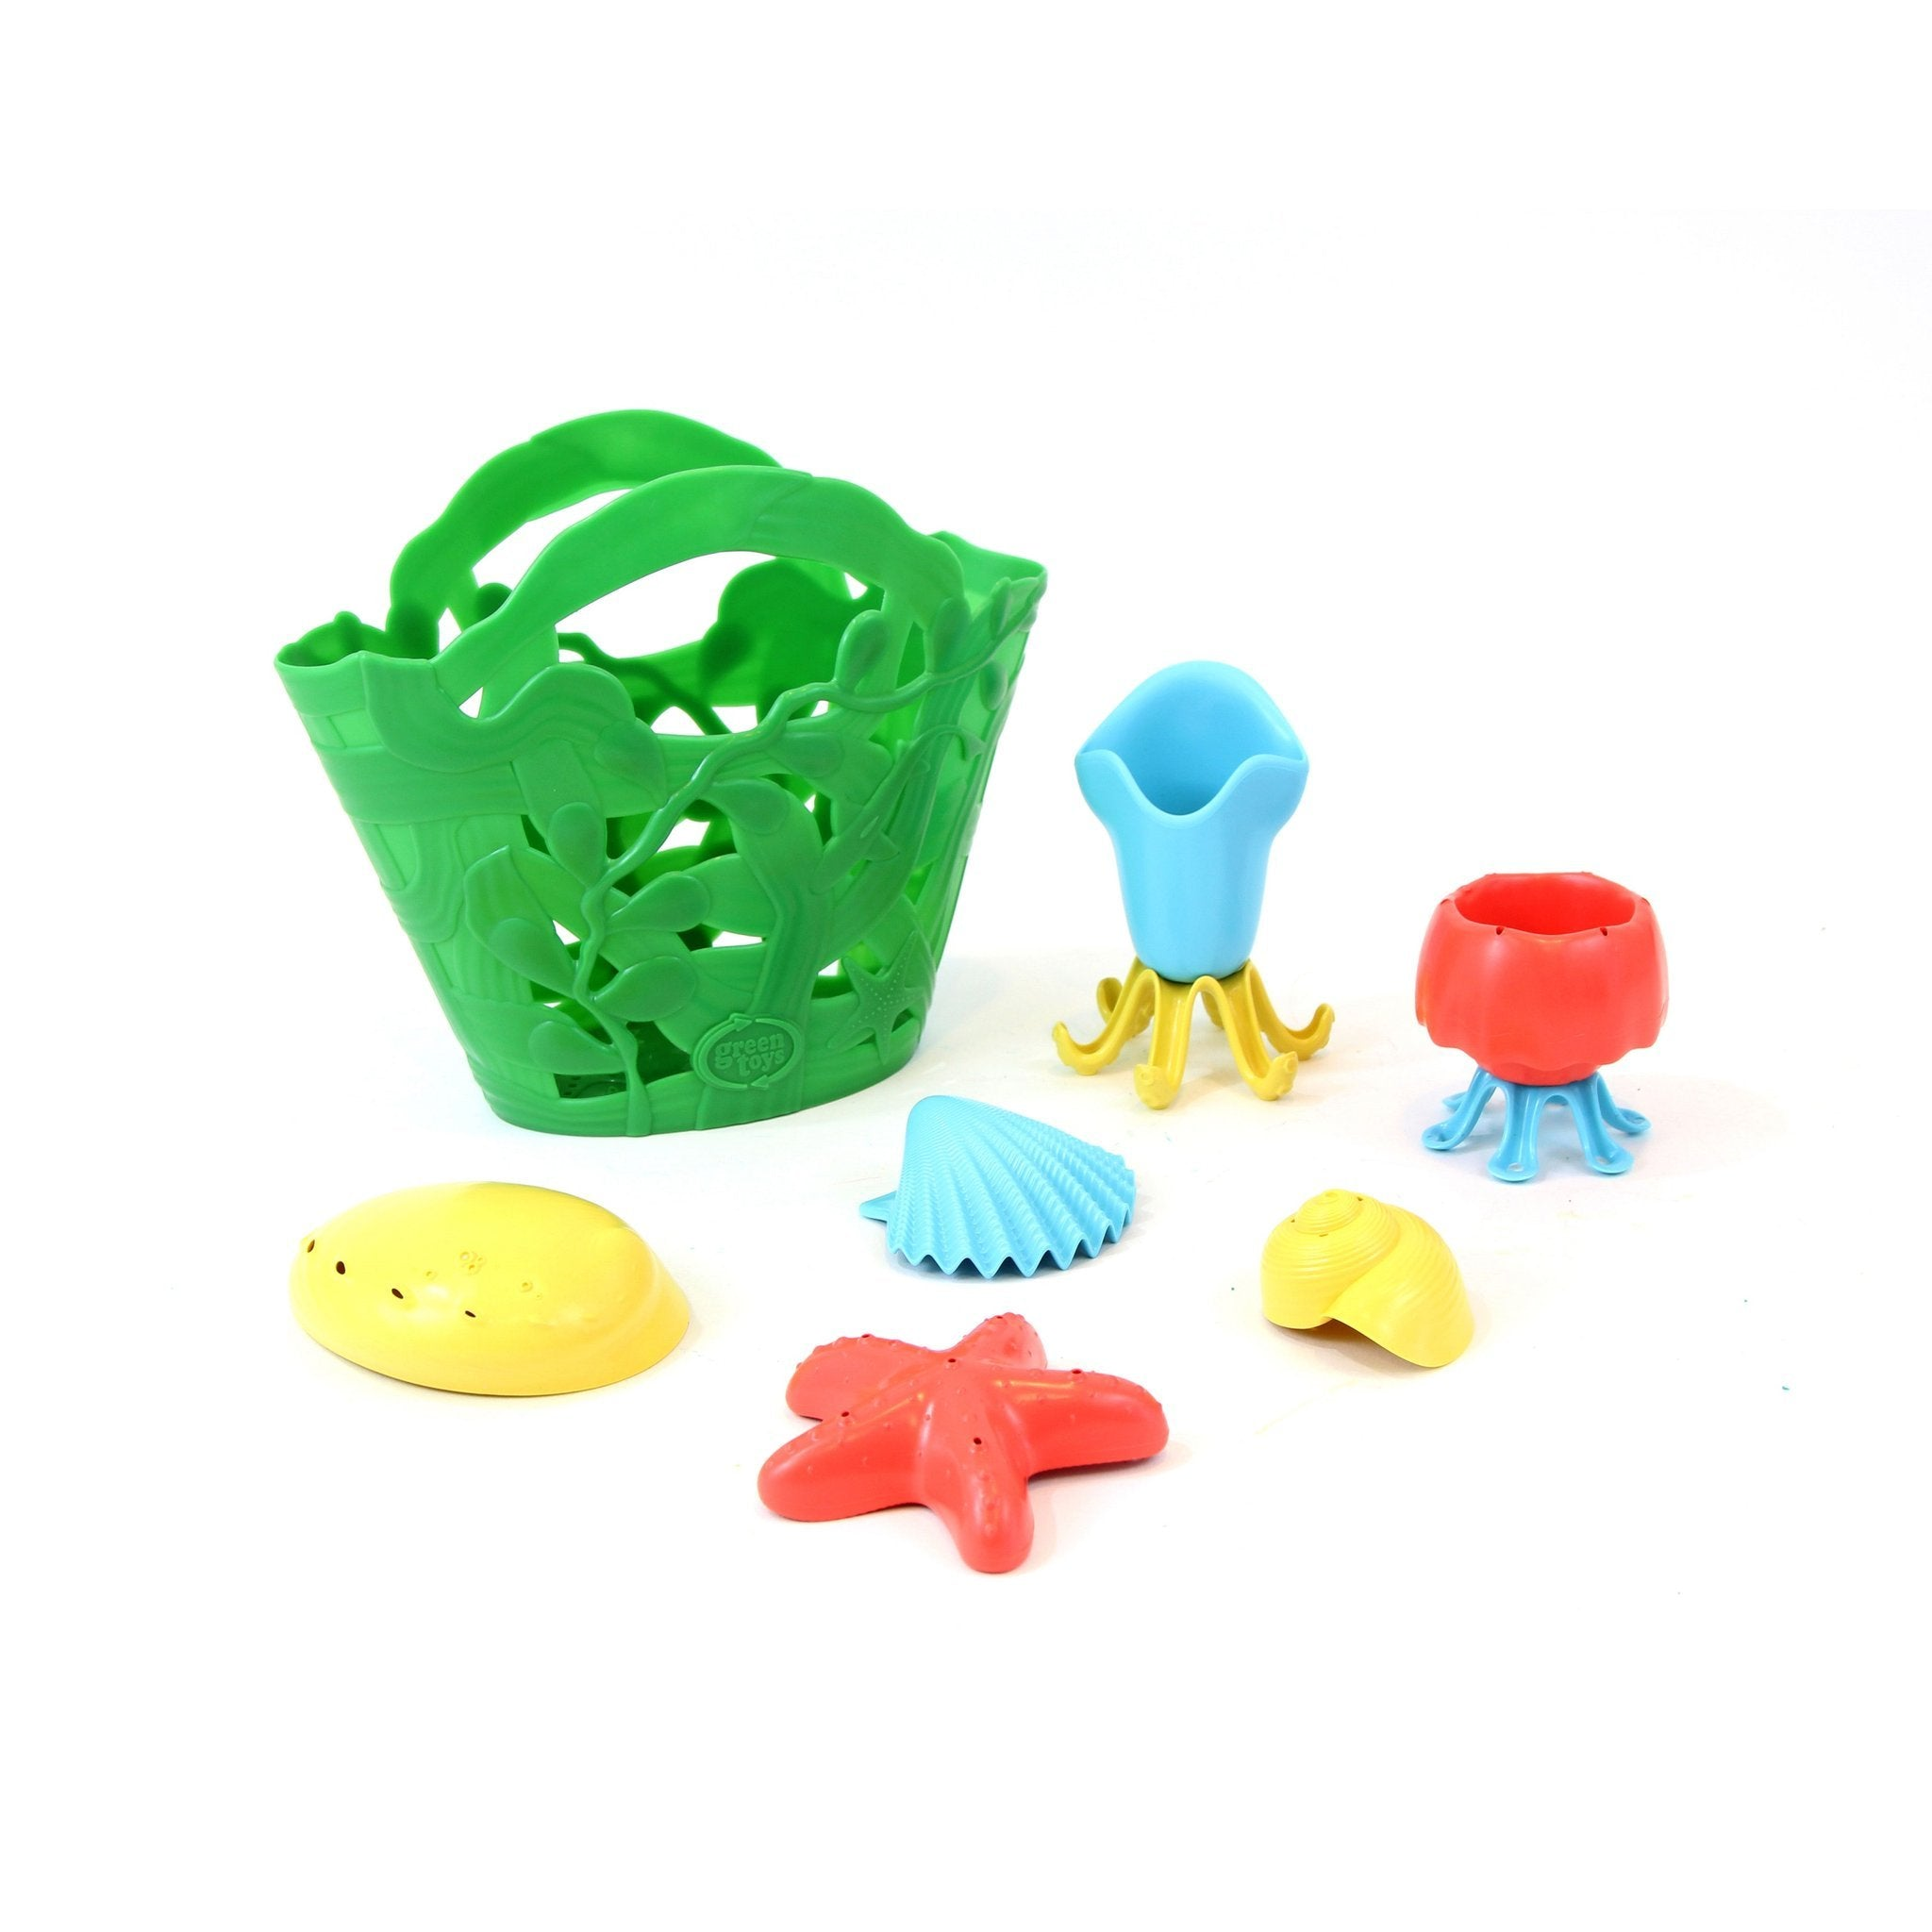 Green Toys Tide Pool Bath Set Green Toys Beach and Sand Toys Green at Little Earth Nest Eco Shop